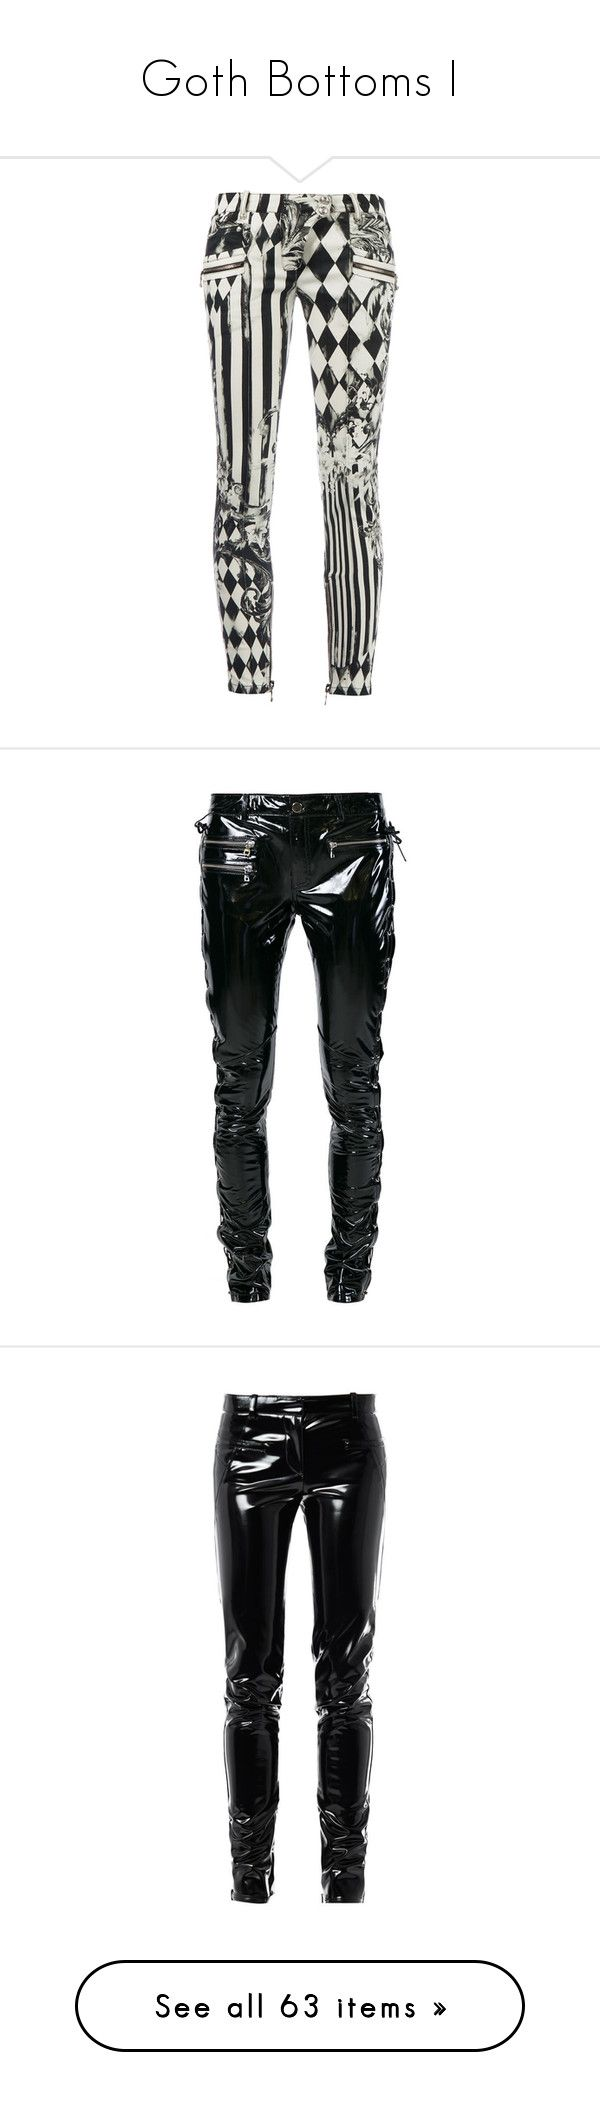 """Goth Bottoms I"" by creaturefeaturerules ❤ liked on Polyvore featuring pants, bottoms, jeans, balmain, trousers, skinny trousers, zip pocket pants, cuff pants, skinny leg pants and cuffed pants"